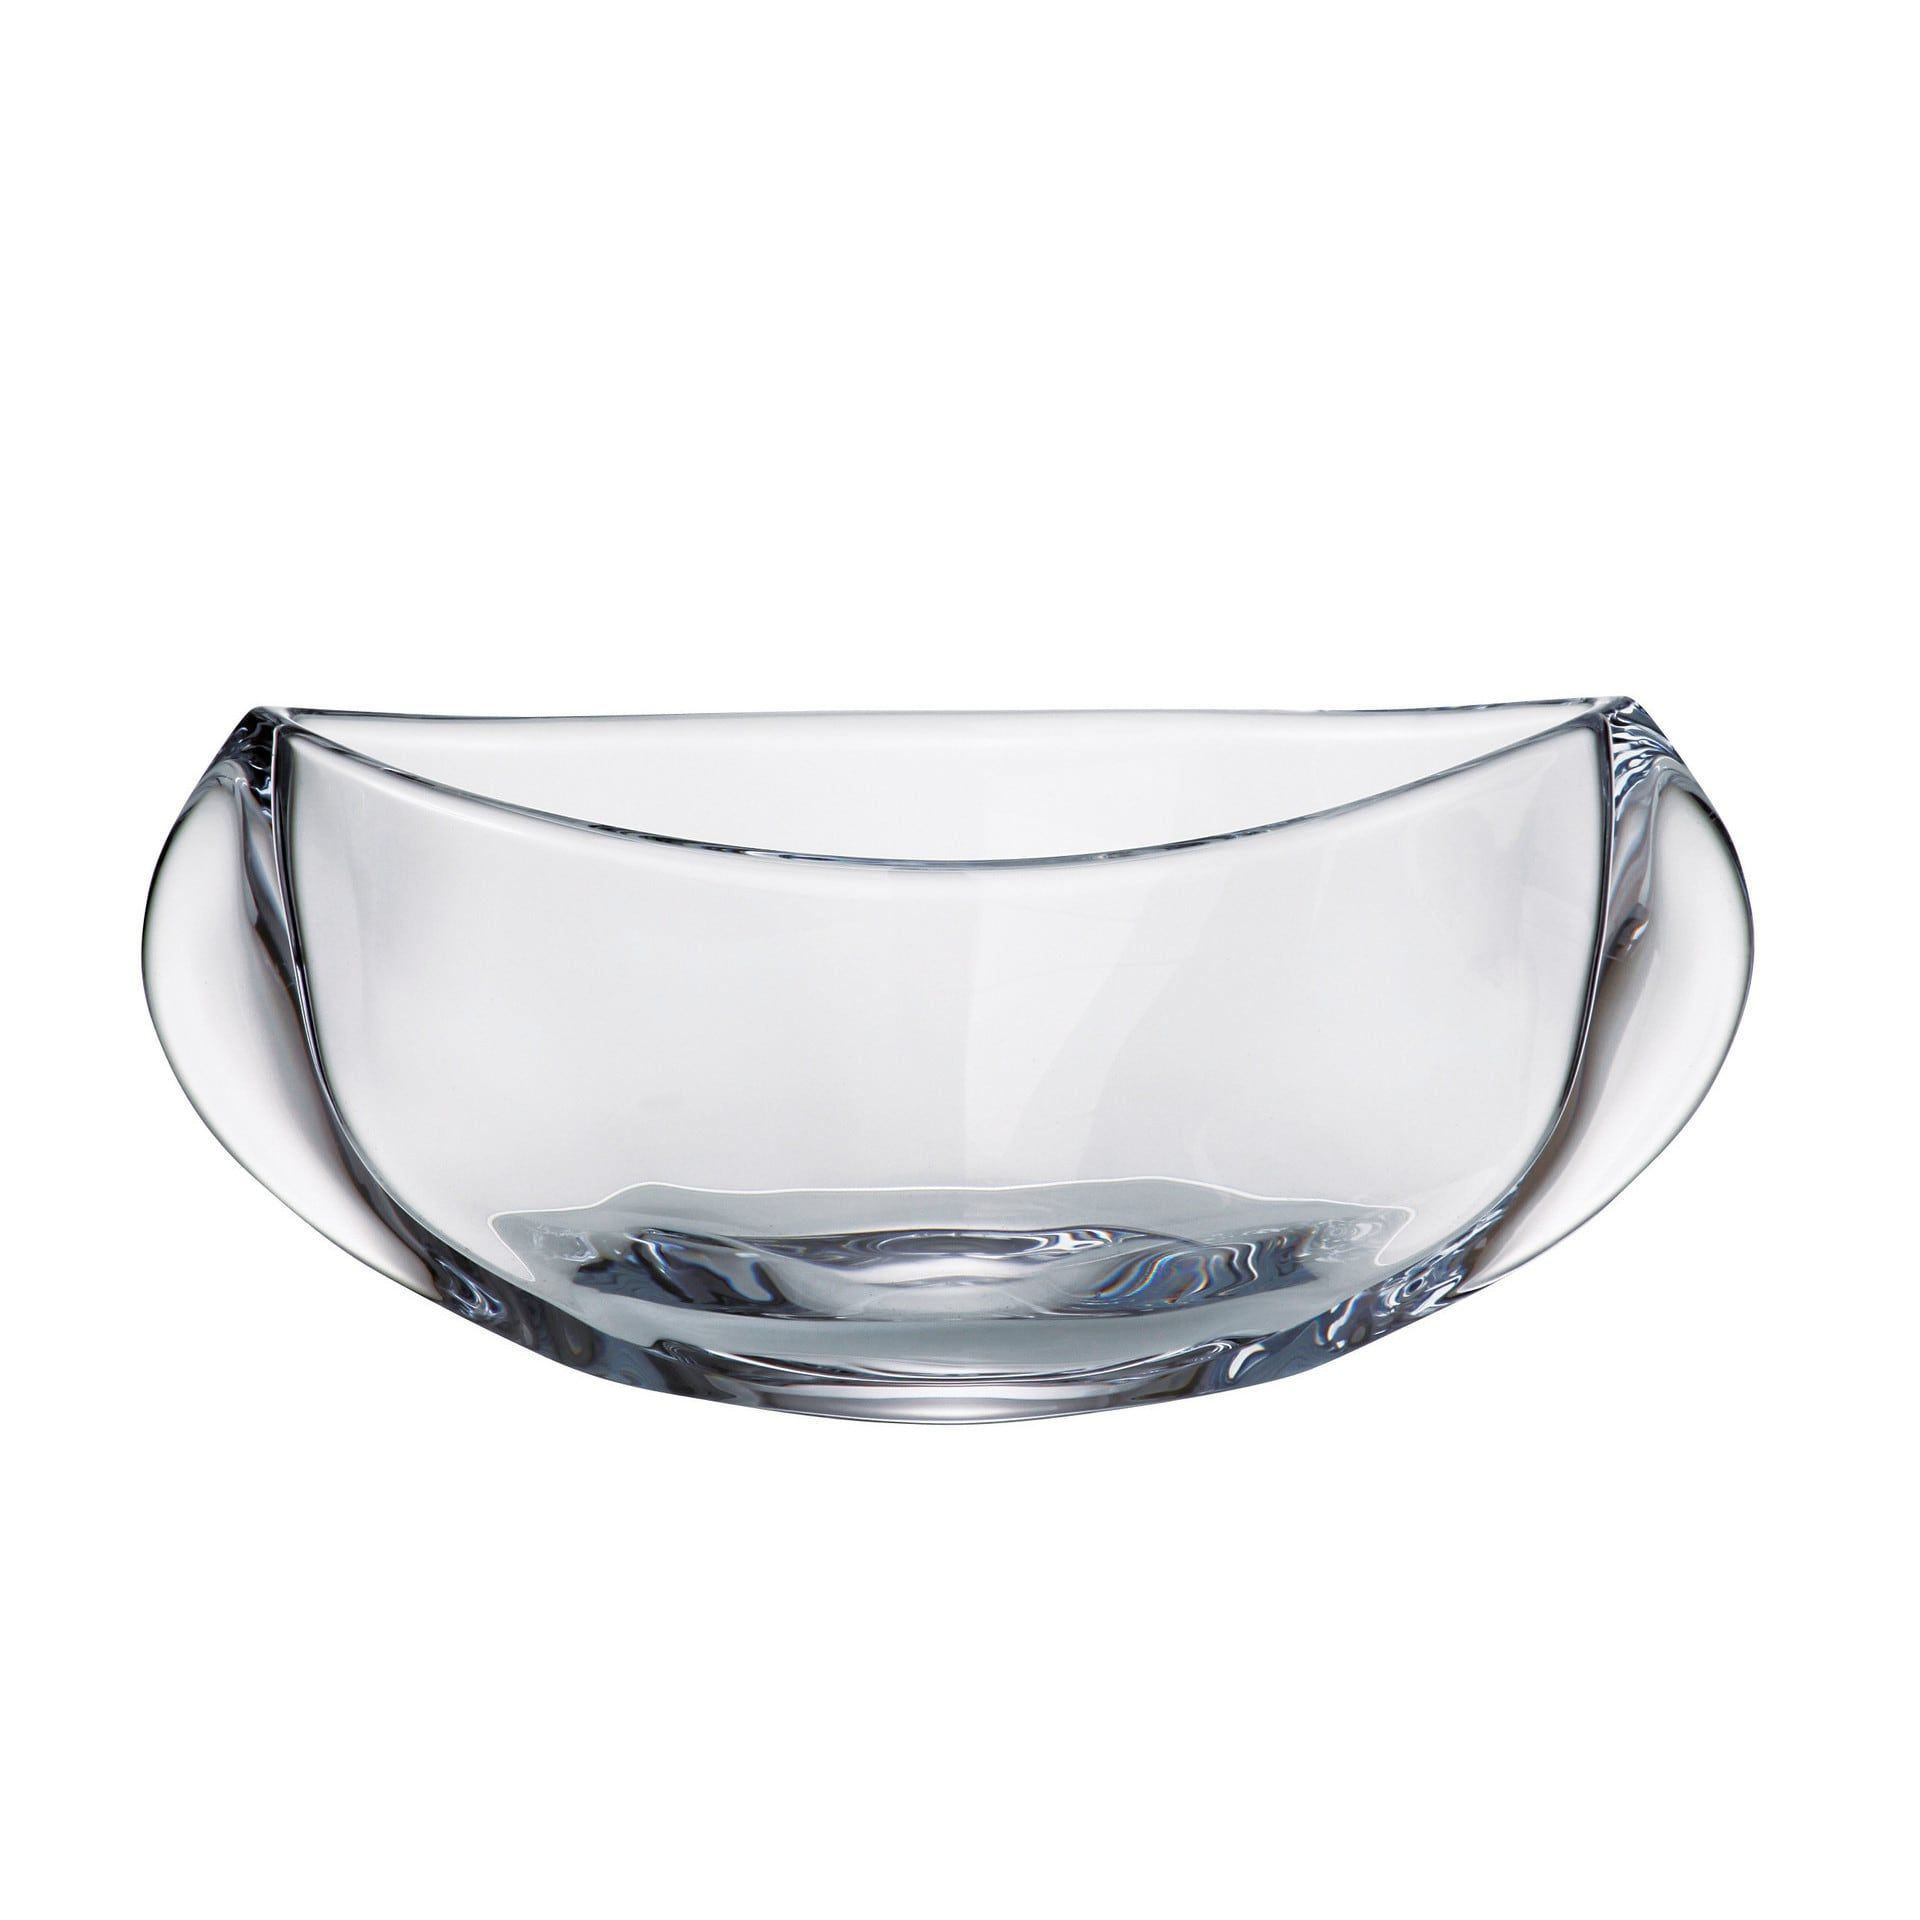 Online Shopping Bedding Furniture Electronics Jewelry Clothing More Glass Serving Bowls Clear Glass Serving Bowls